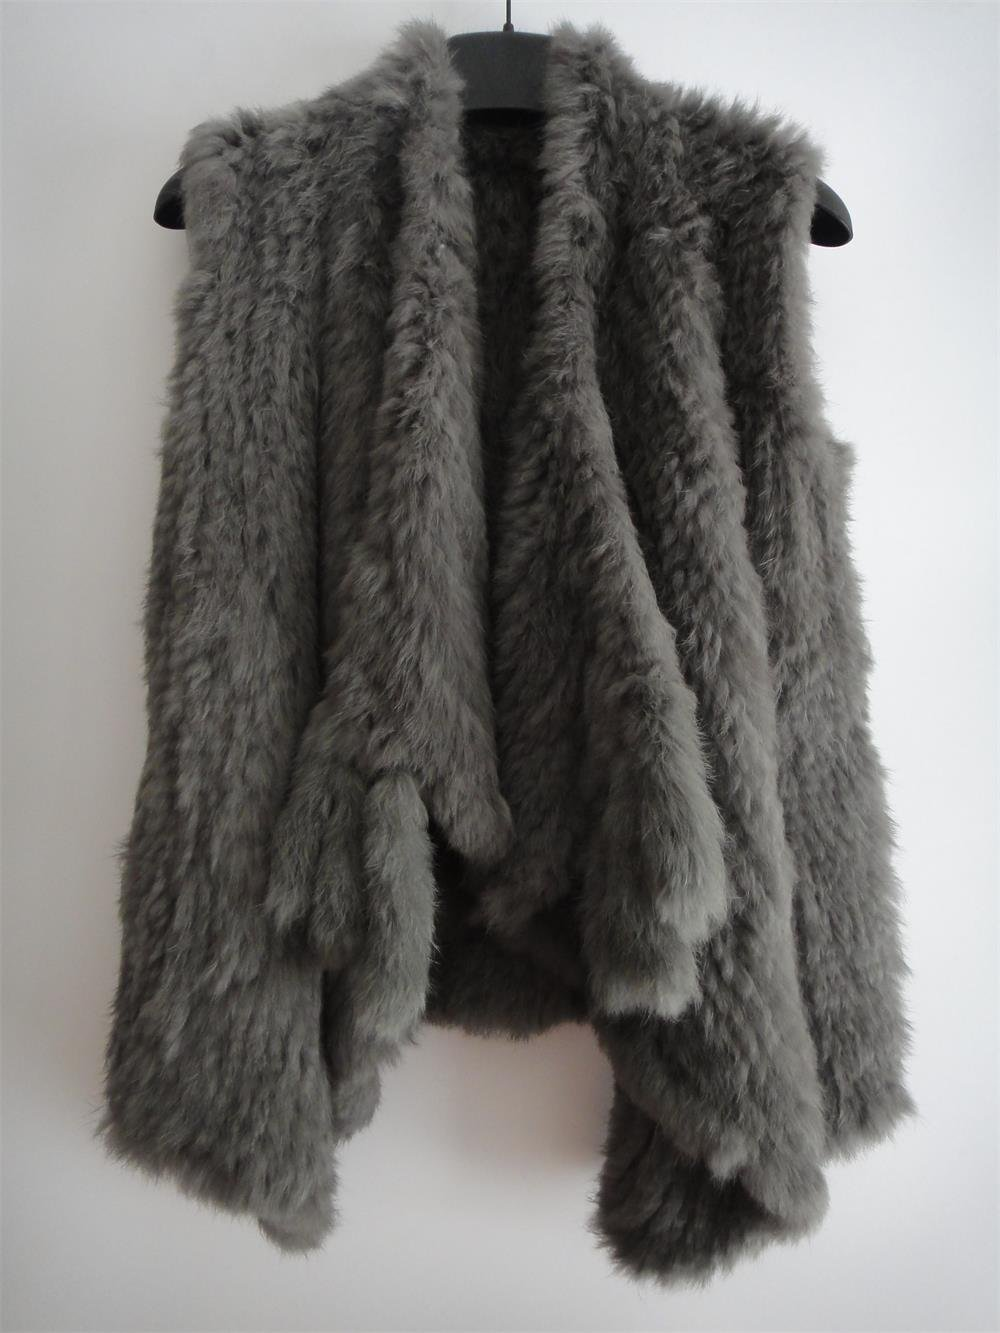 Dark Grey Knit Rabbit Fur Sweater Vest Fur Gilet